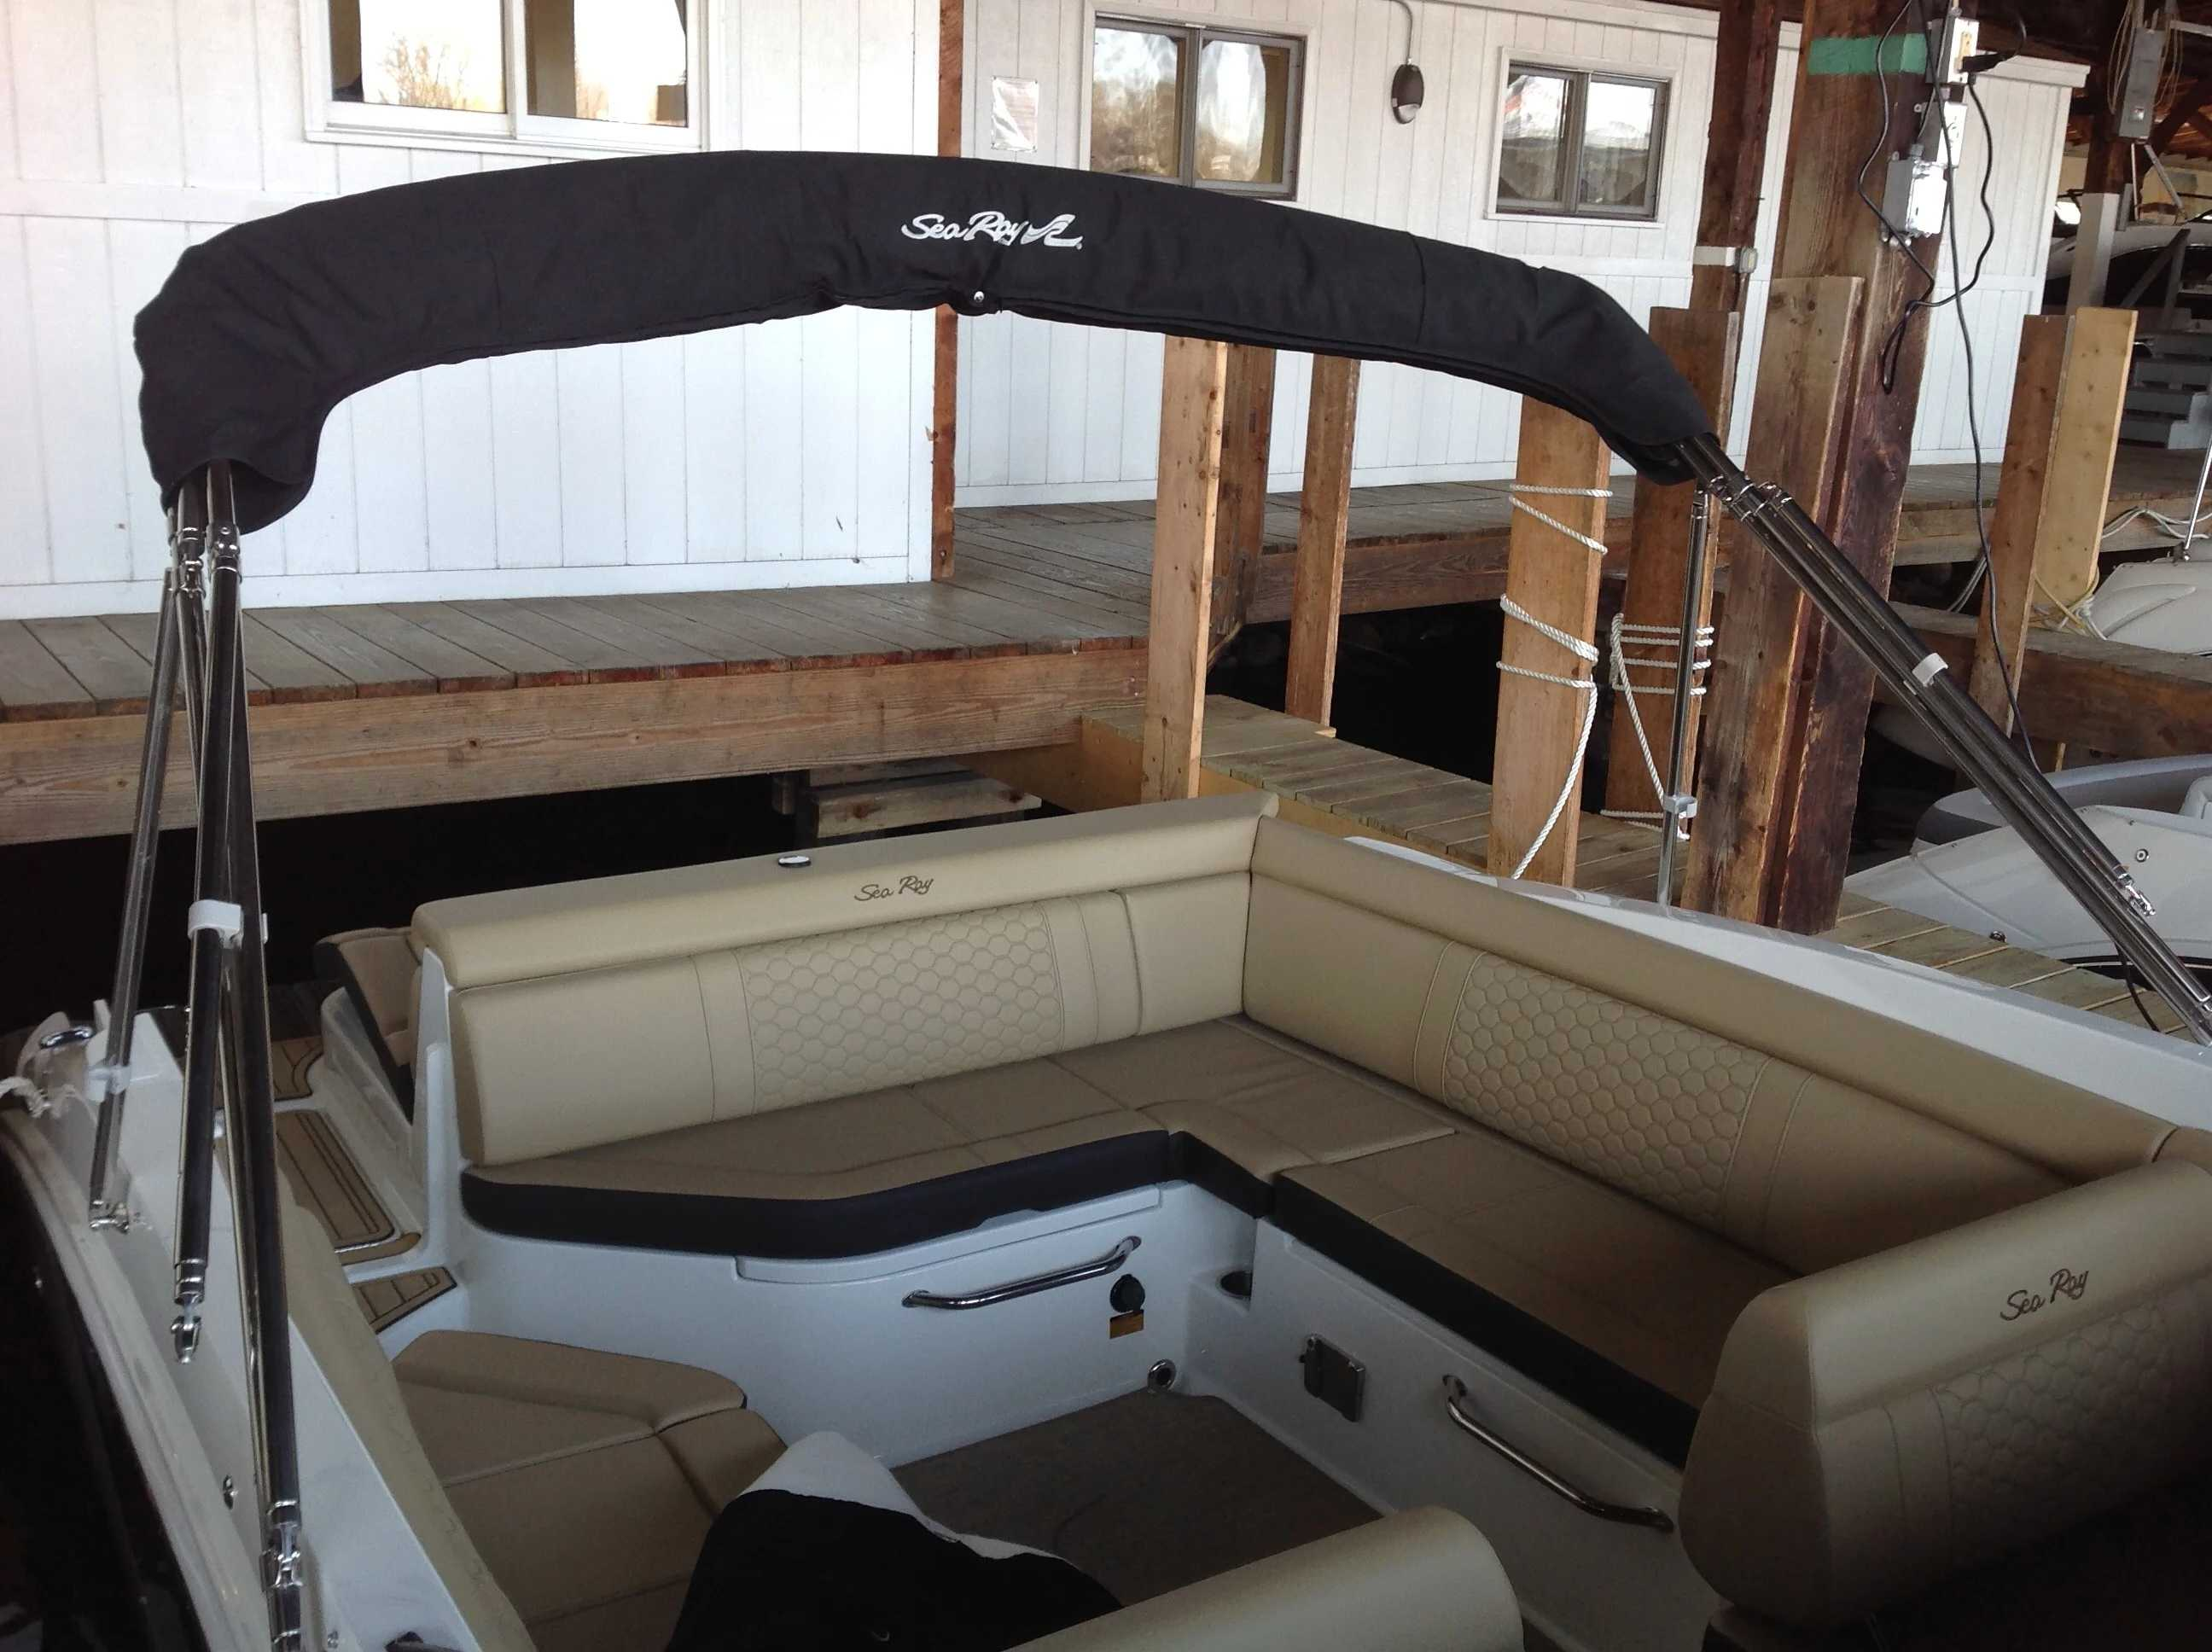 2021 Sea Ray boat for sale, model of the boat is 270 SDX & Image # 14 of 15